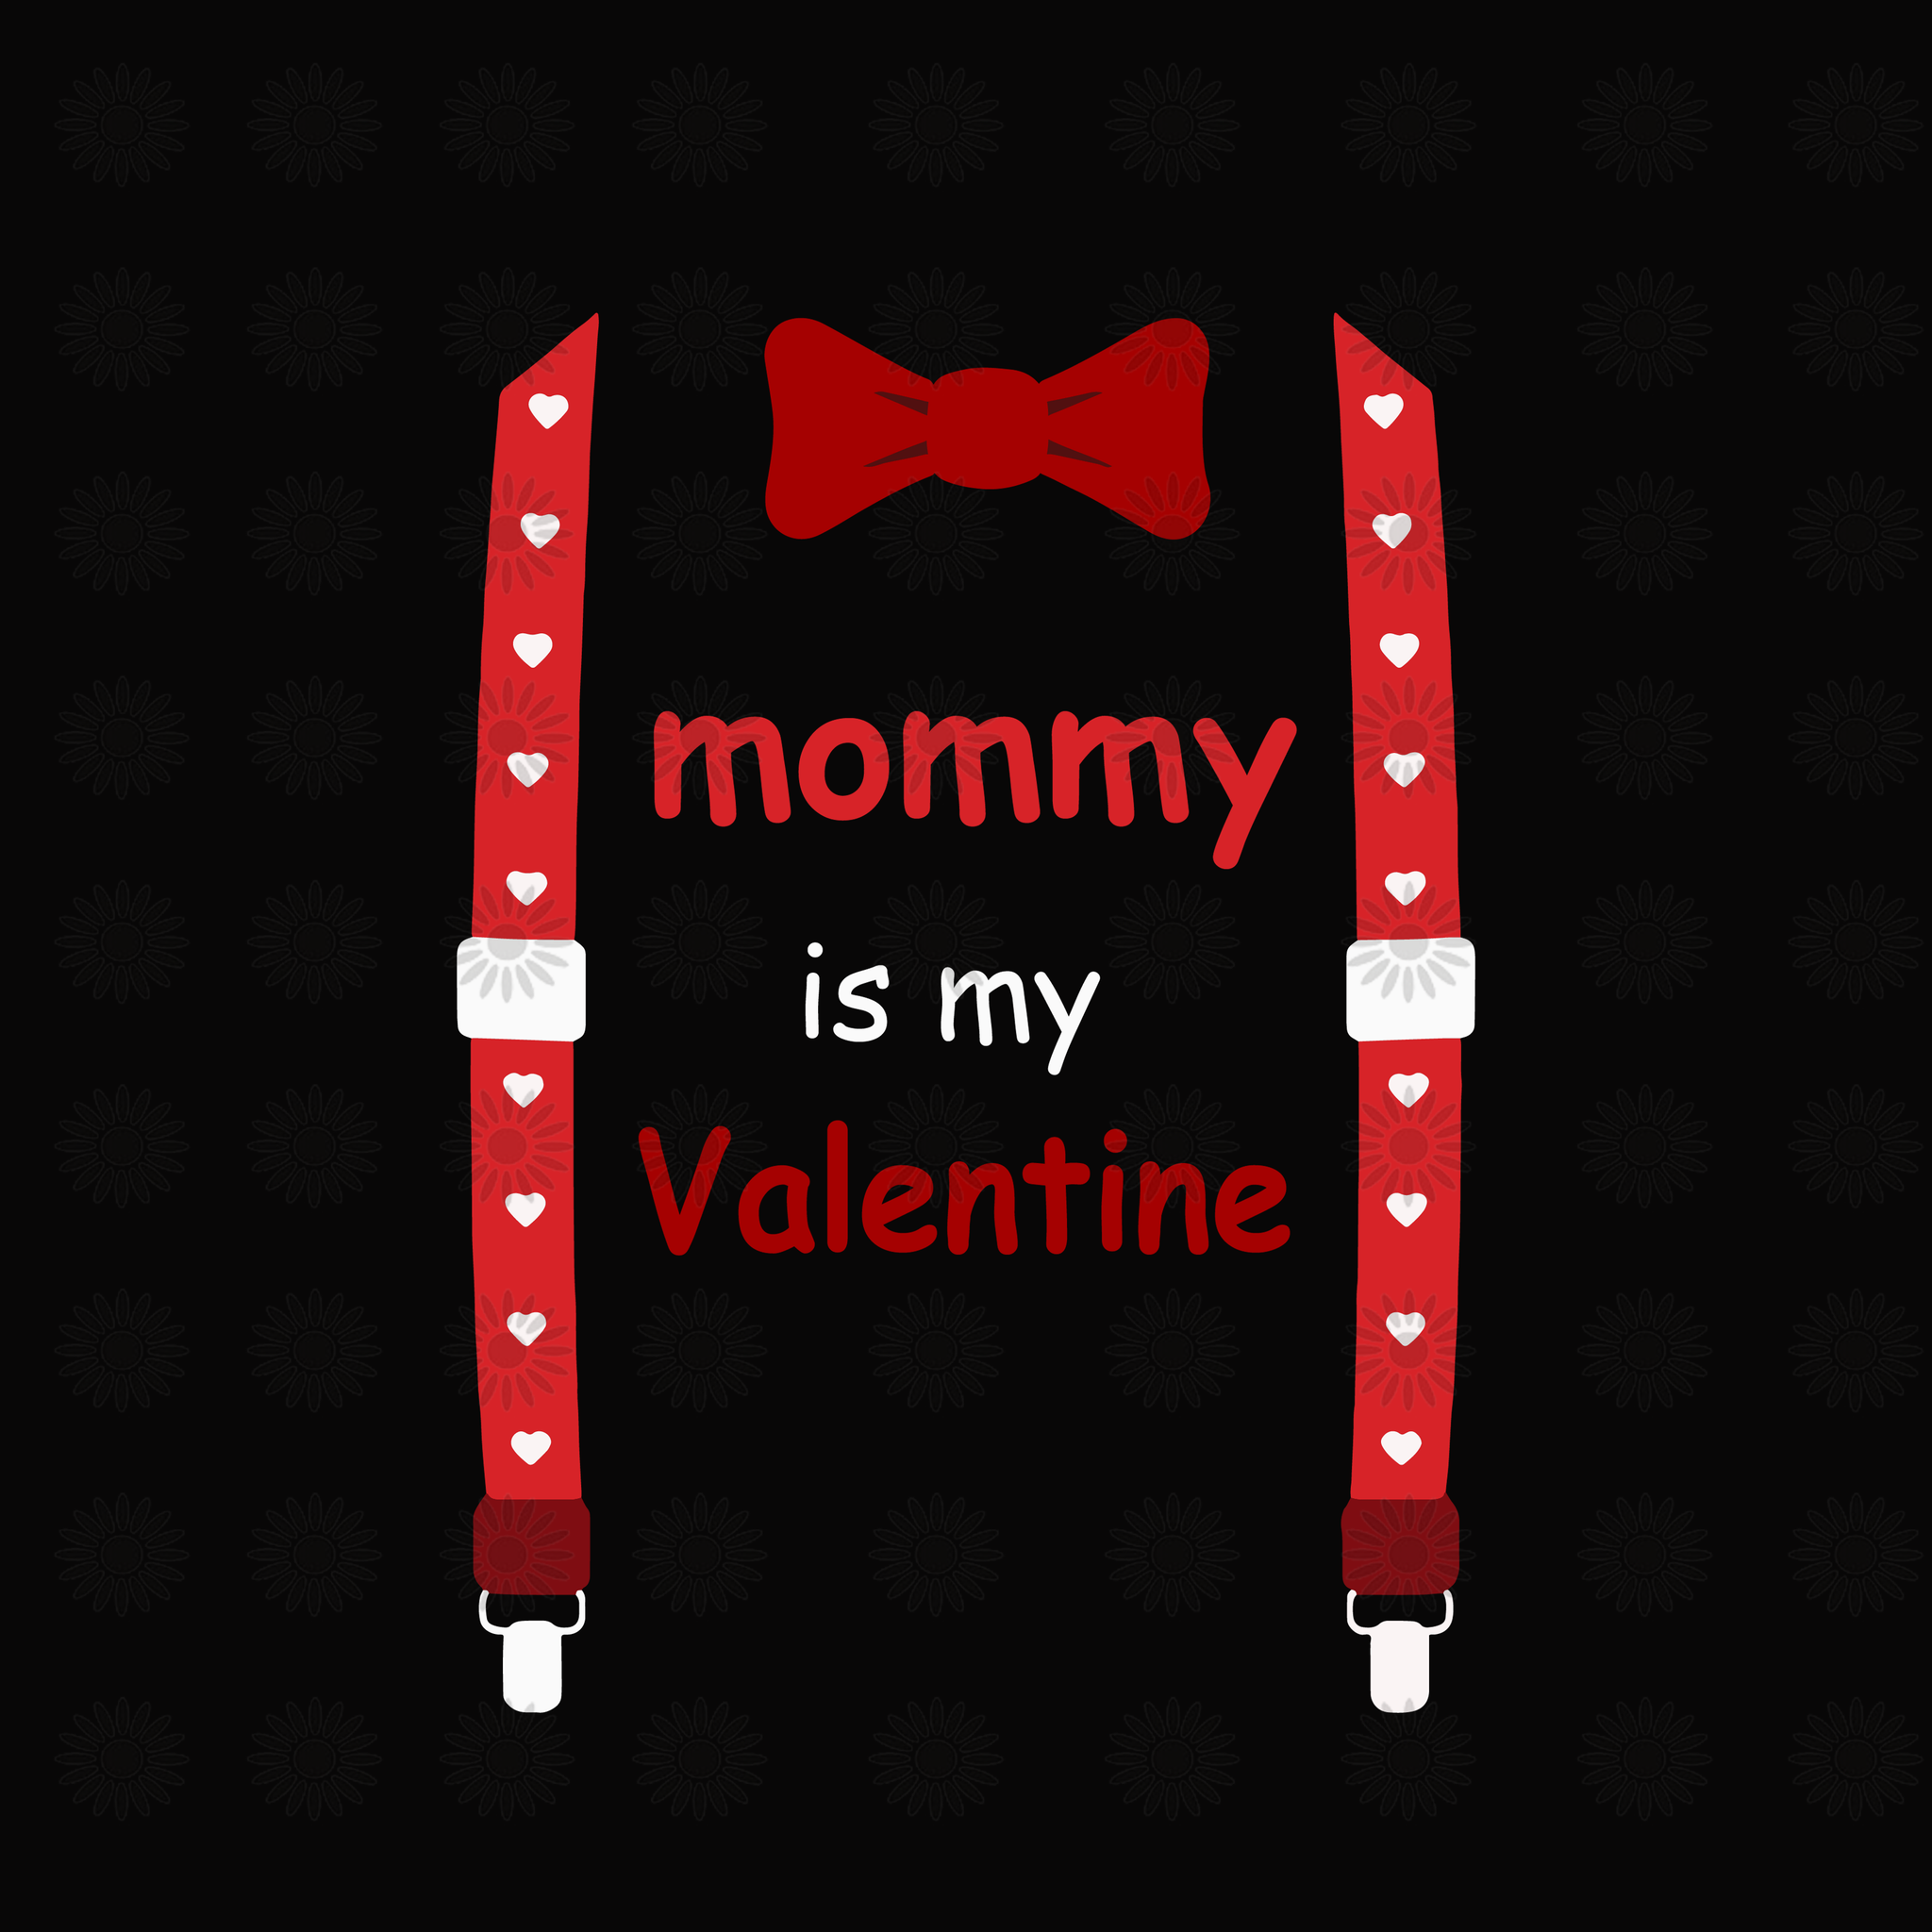 Mommy is my valentine svg, Mommy is my valentine, mommy svg, valentine svg, funny quotes svg, png, eps, dxf file